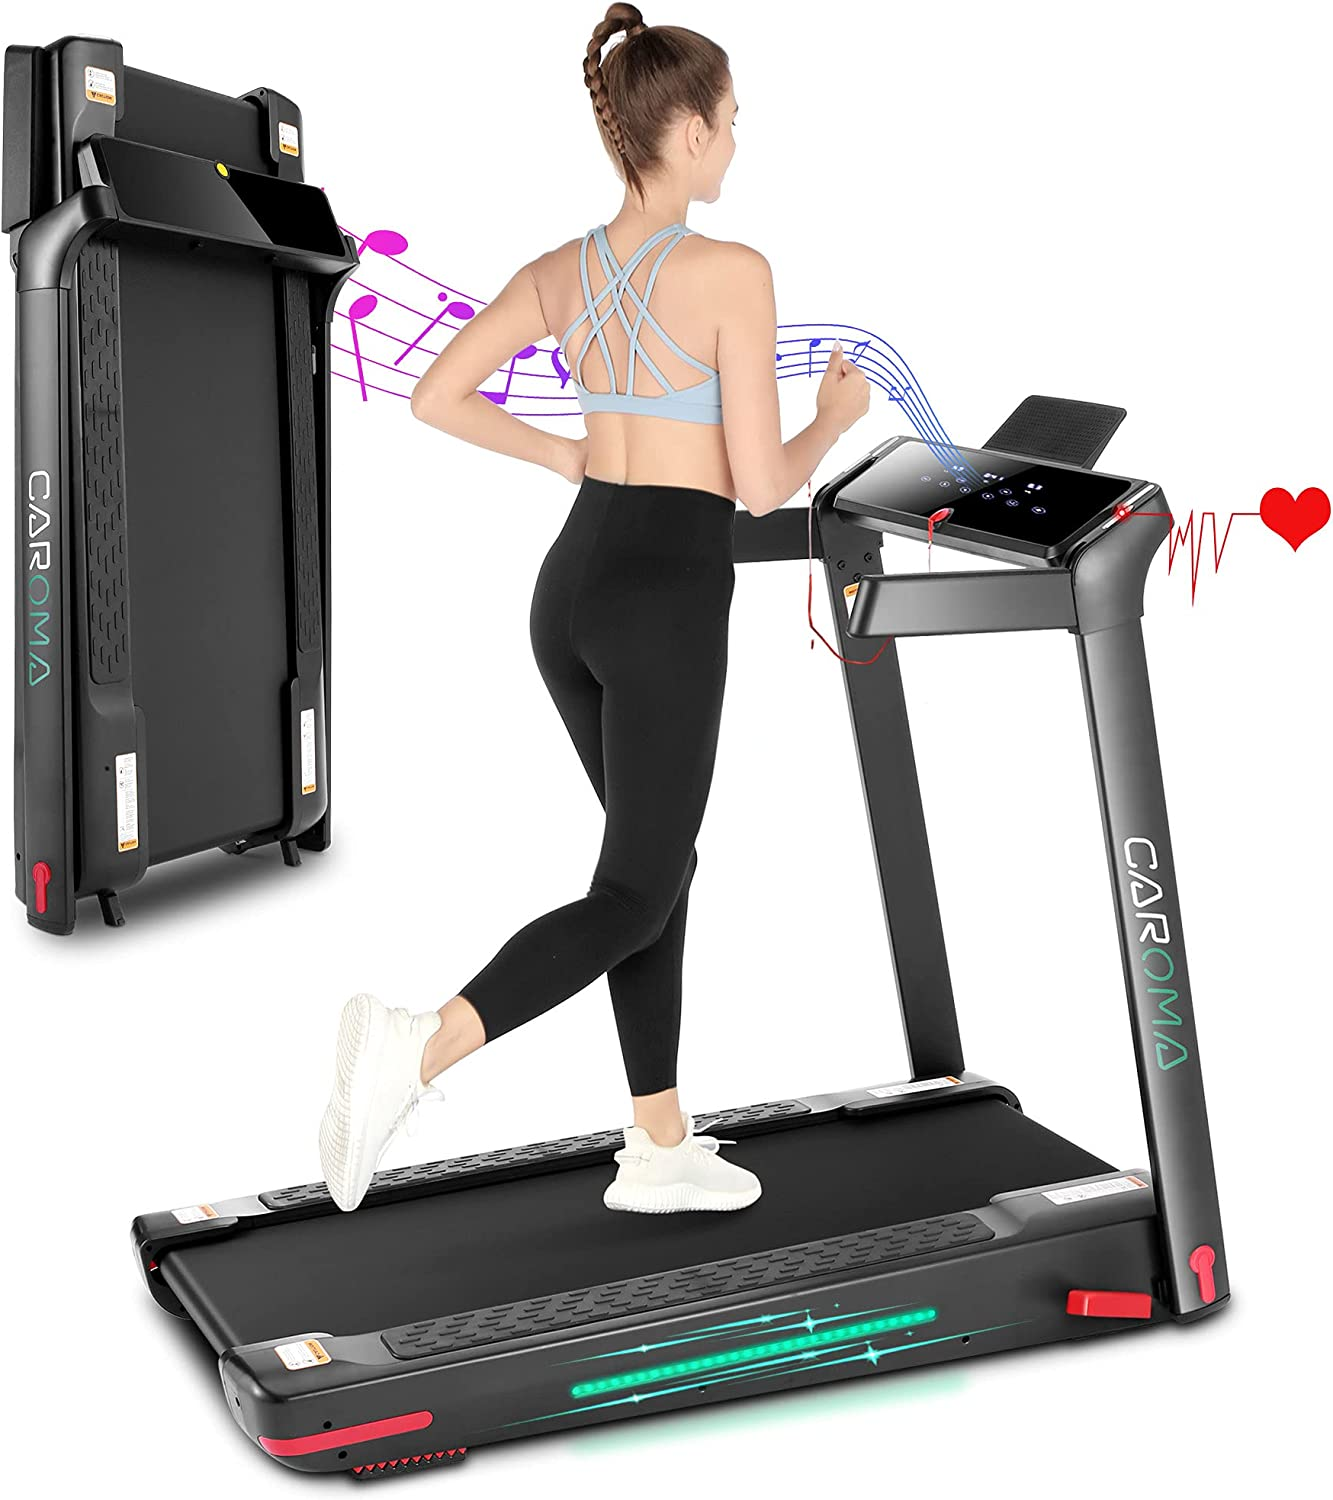 Folding Treadmill for Home, Cardio Running Machine with Incline 4%,12 Program, 3.0HP Power 8.7 MPH Max Speed, LED Touch Screen, 7 Color LED Lights, Bluetooth Speakers, APP Control, Heart Sensor